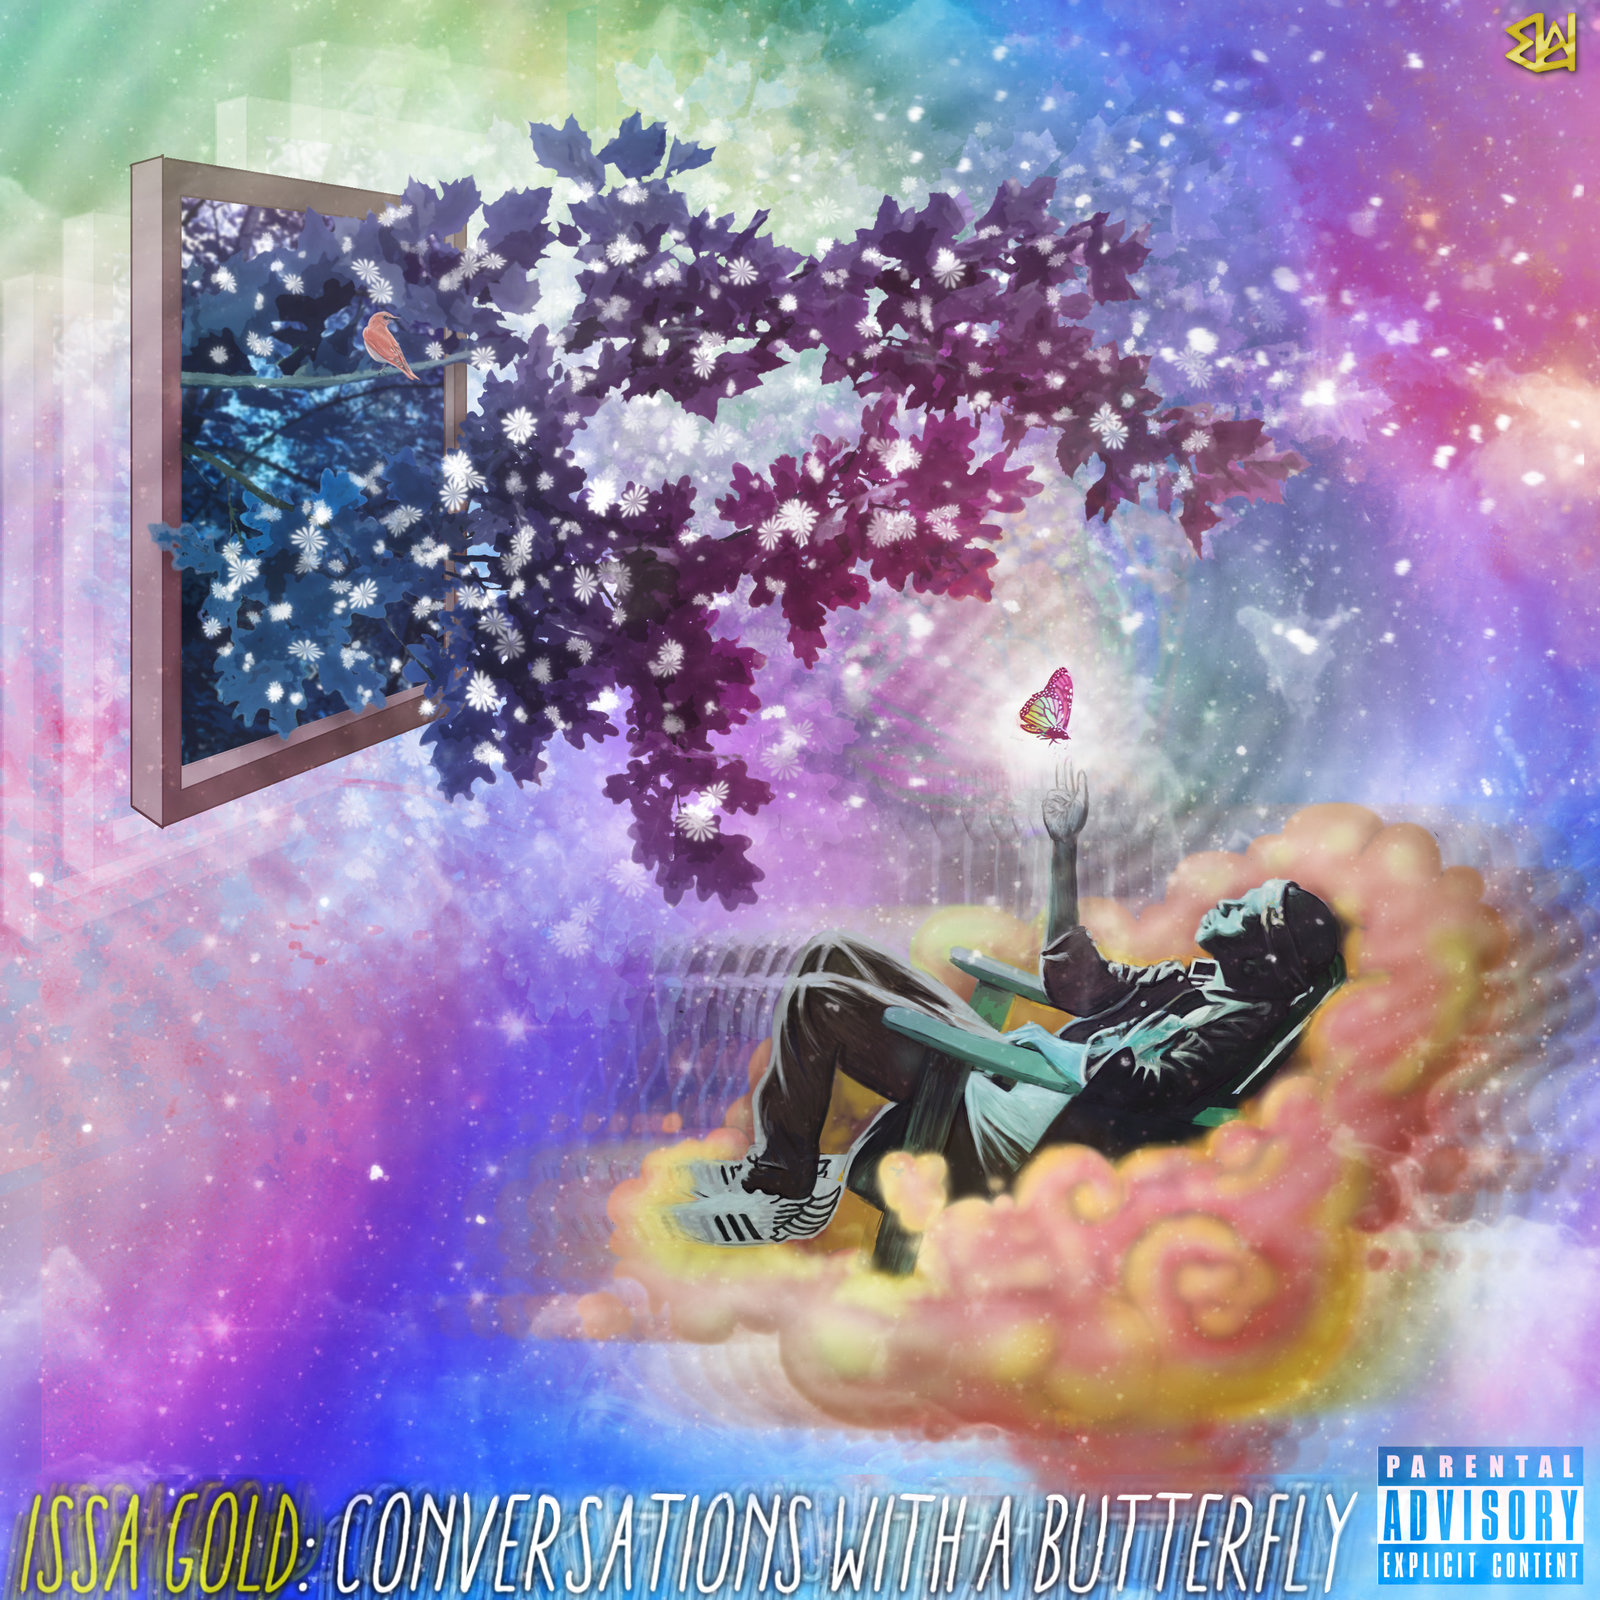 issa_gold_s_conversations_with_a_butterfly_cover_by_pencilfingerz-d7qyacp.jpg